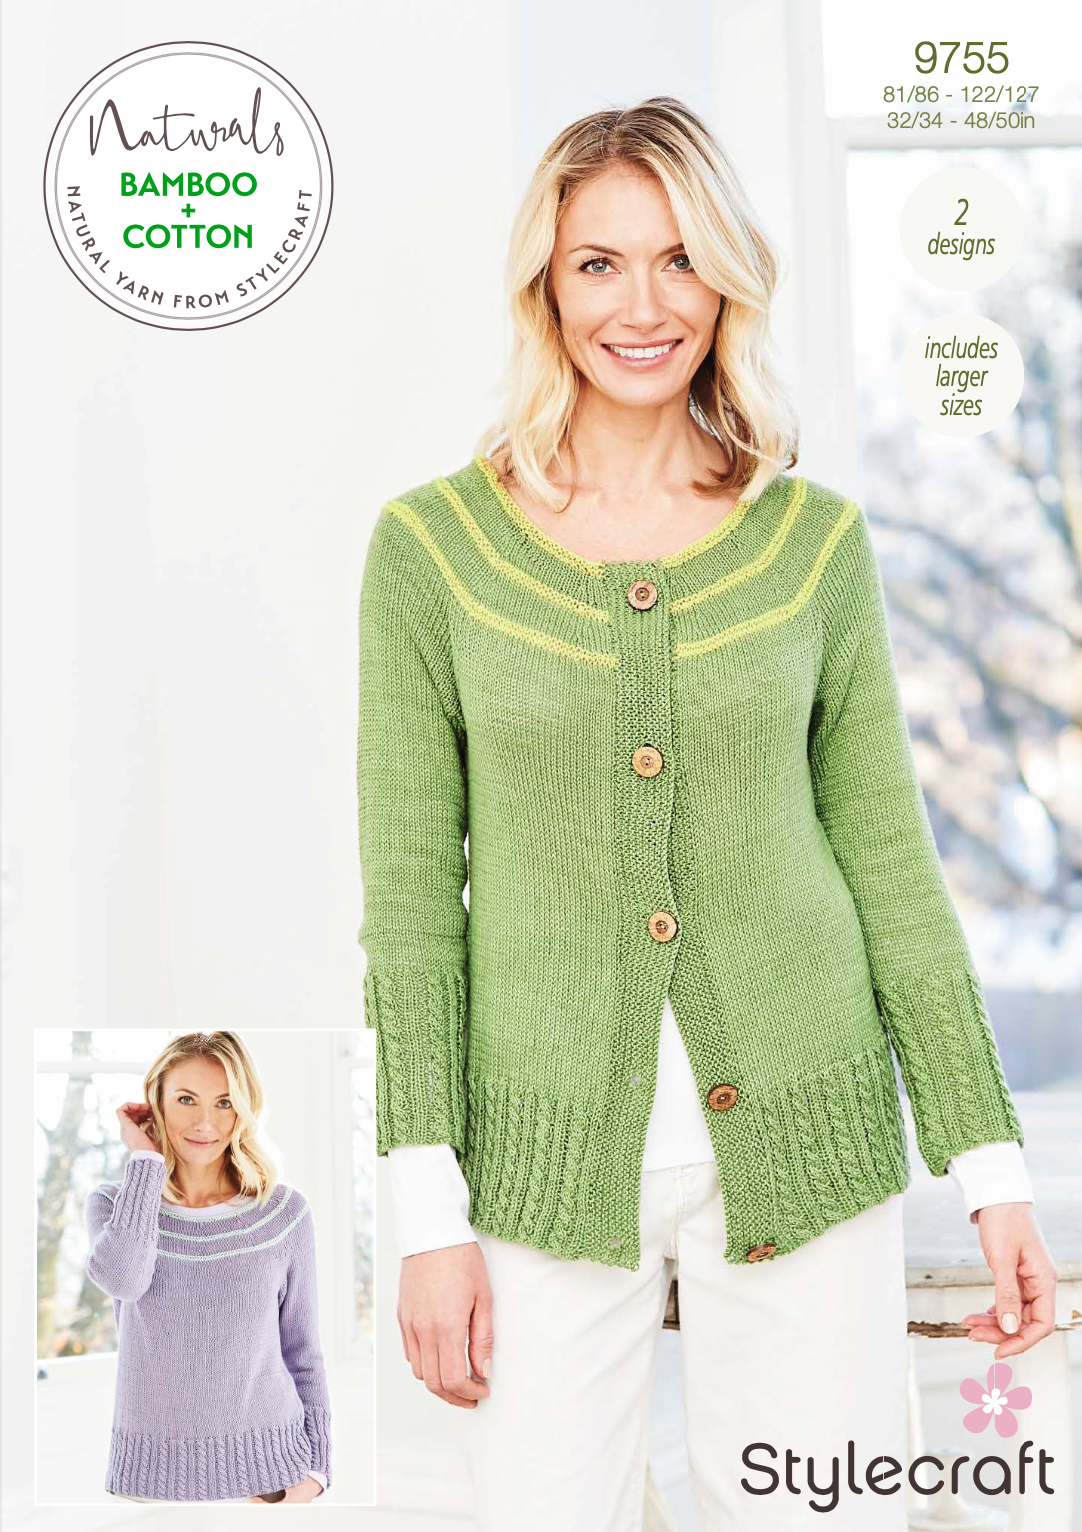 Stylecraft Pattern Naturals Bamboo+Cotton 9755 (download) product image